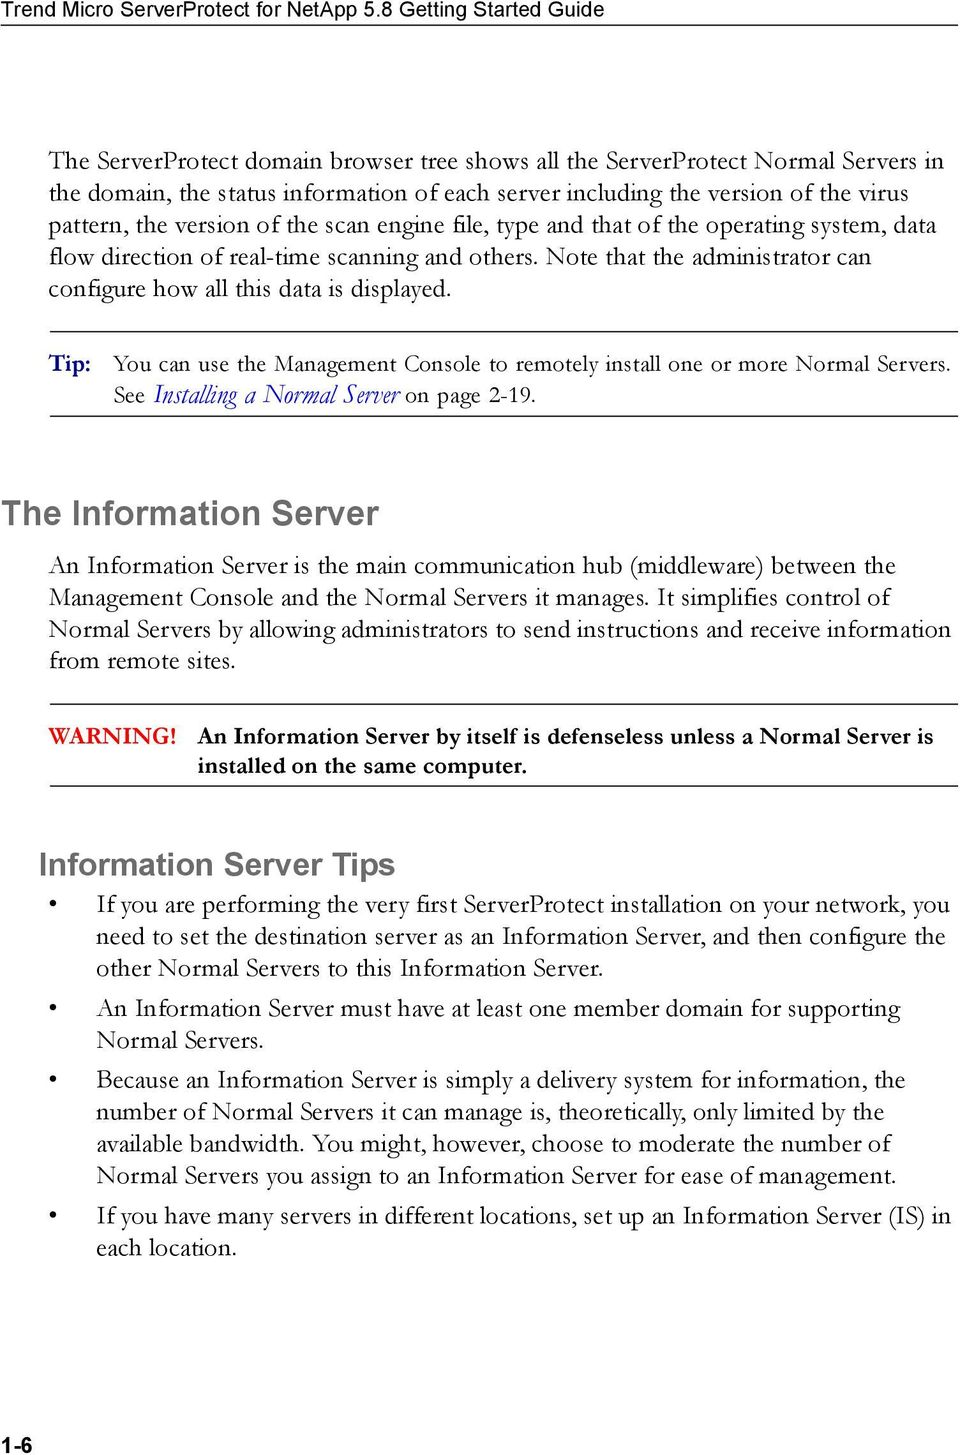 Trend Micro ServerProtect for NetApp 5 8 Getting Started Guide - PDF